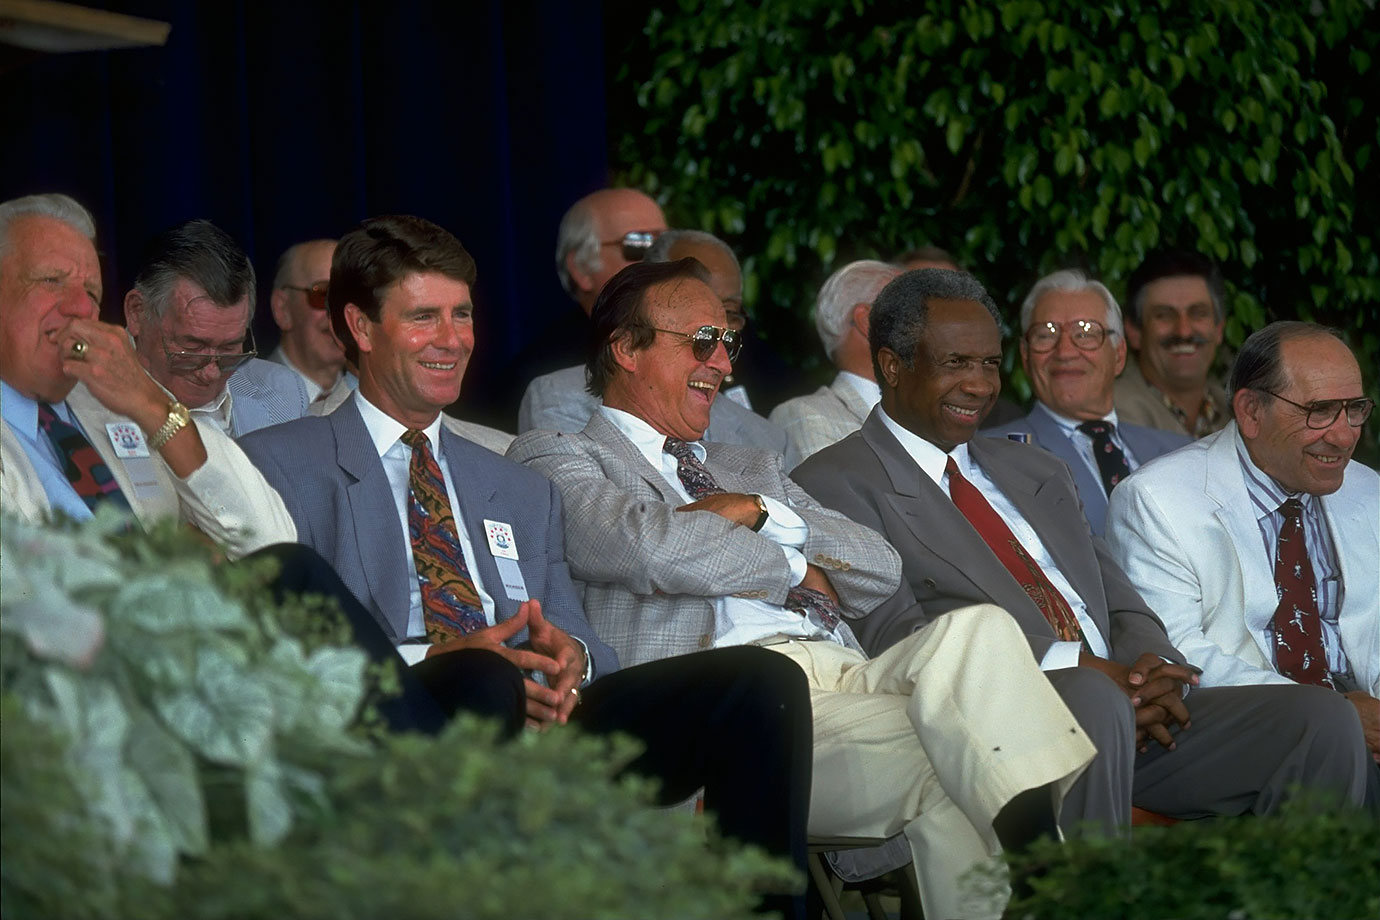 August 1, 1993 — Hall of Fame Induction Ceremony